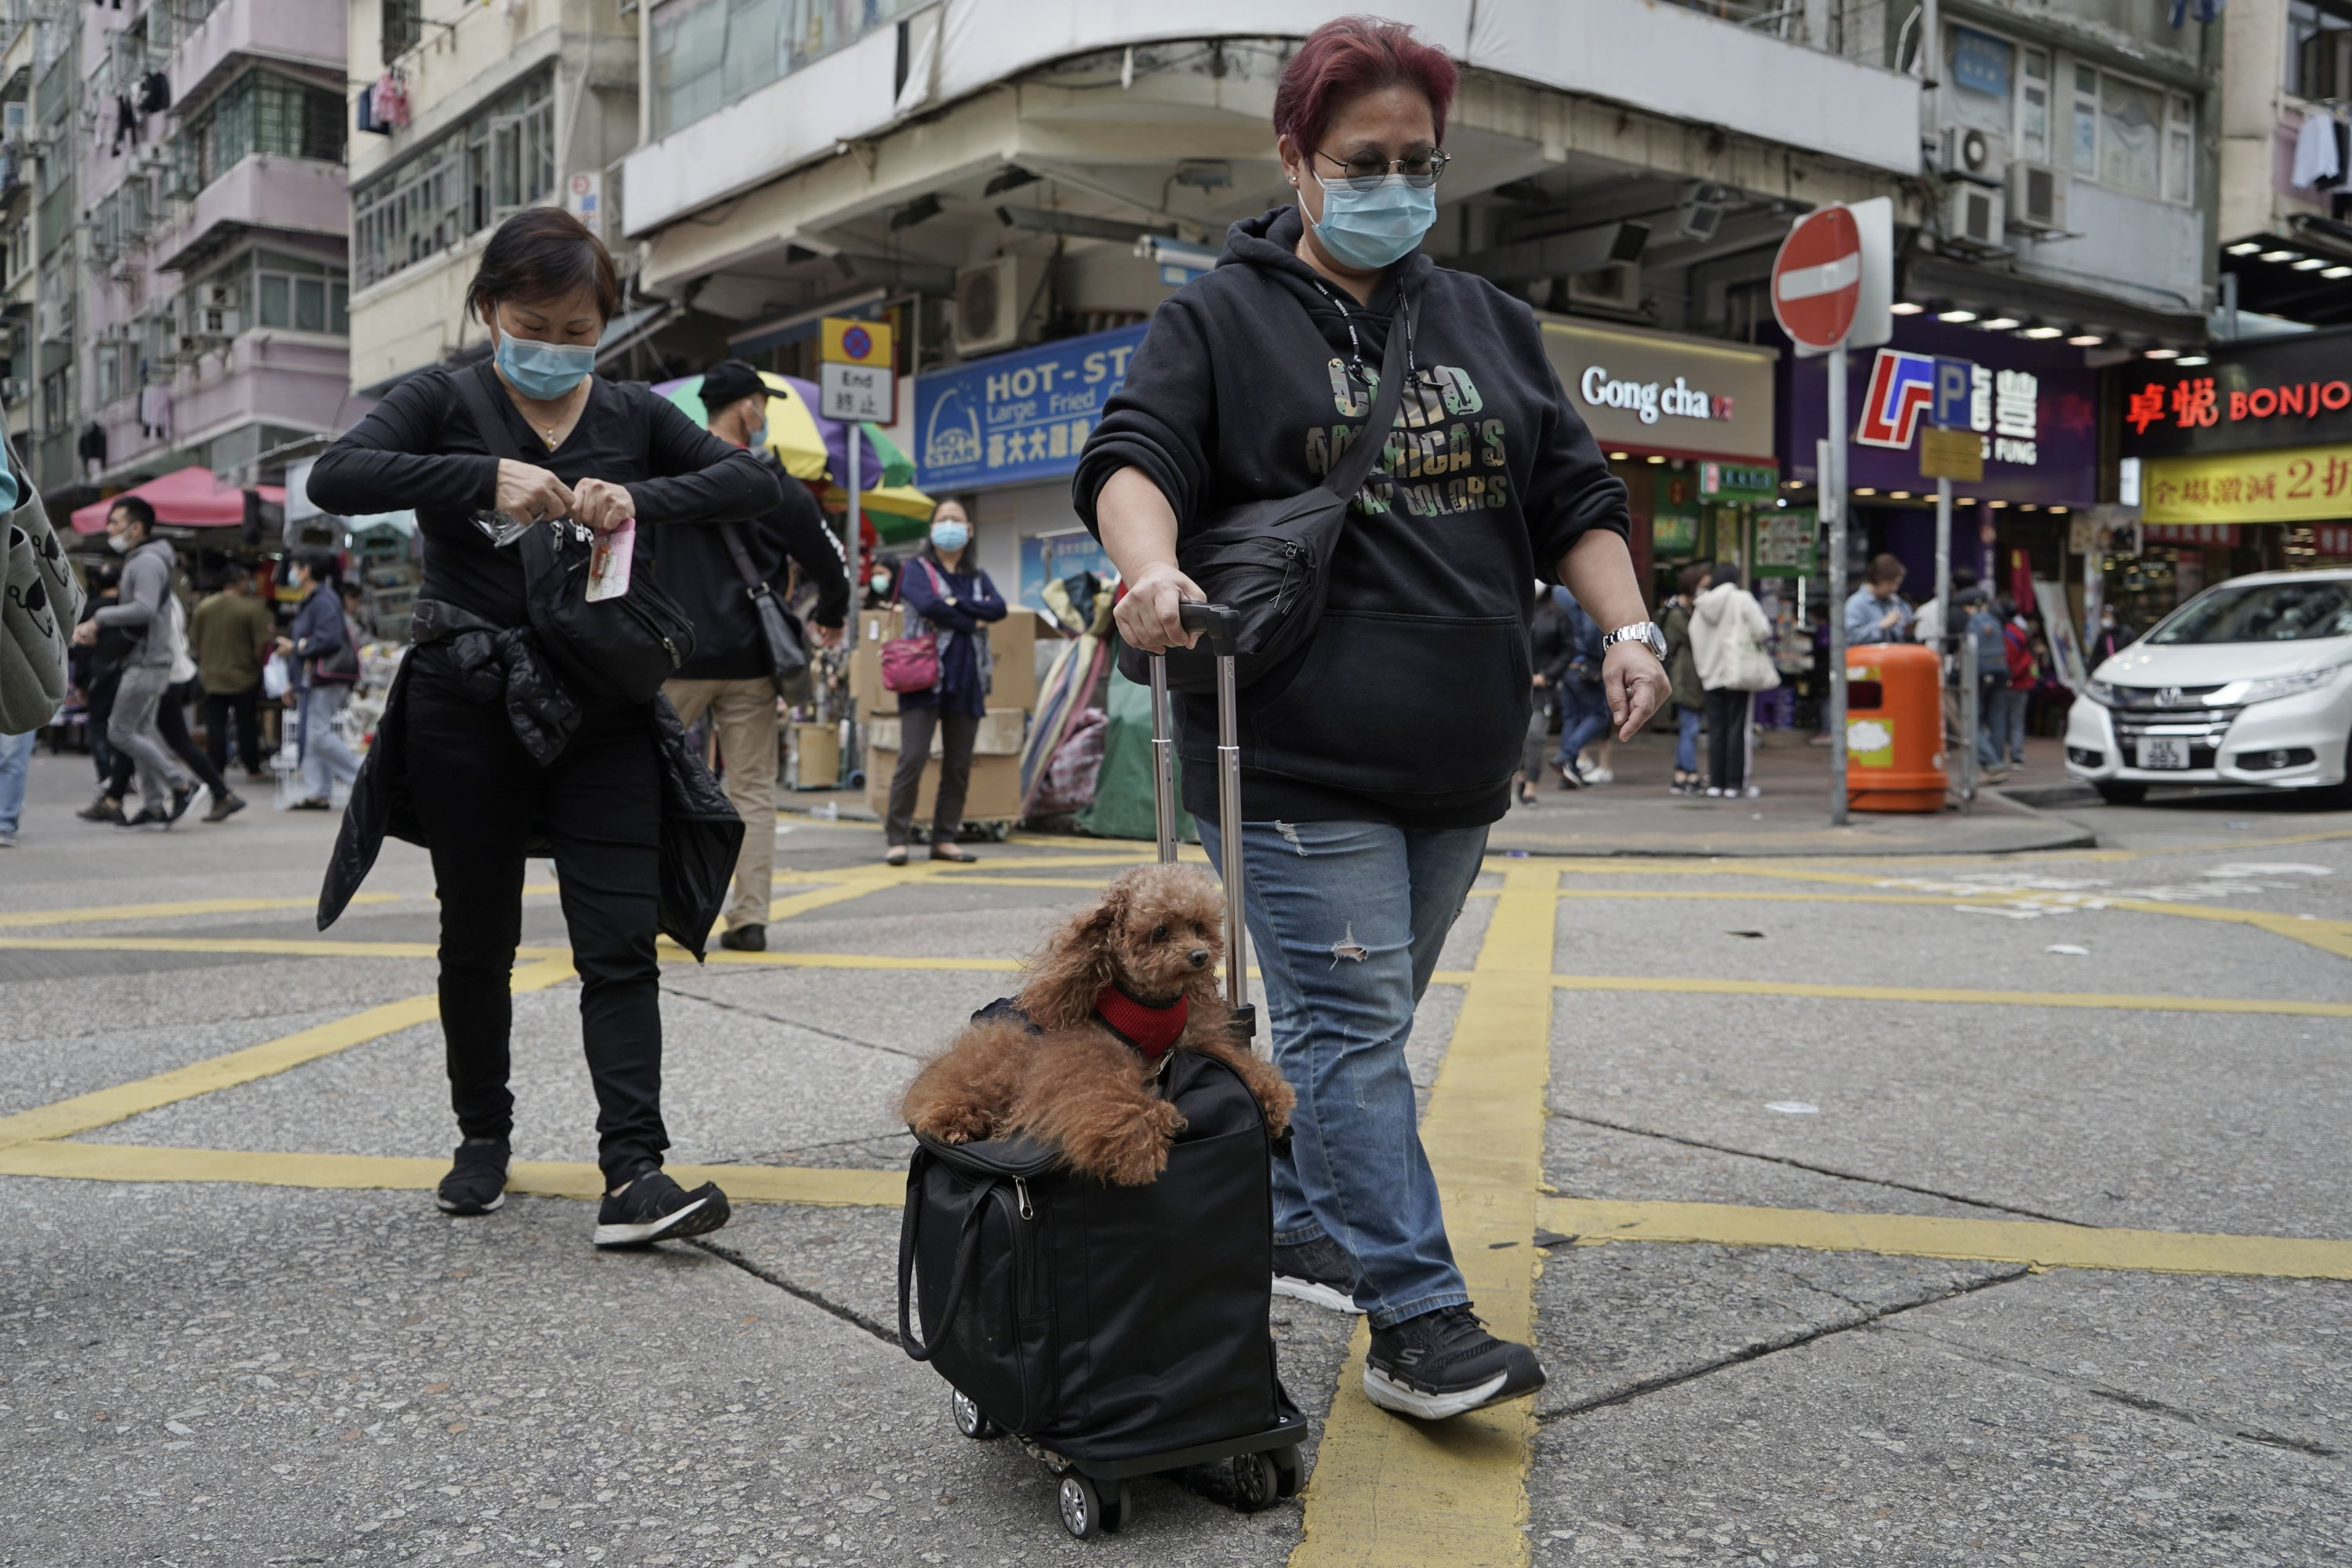 A woman wearing a face mask is seen traveling with her dog and suitcase in Hong Kong, China, March 5, 2020. (AP Photo)